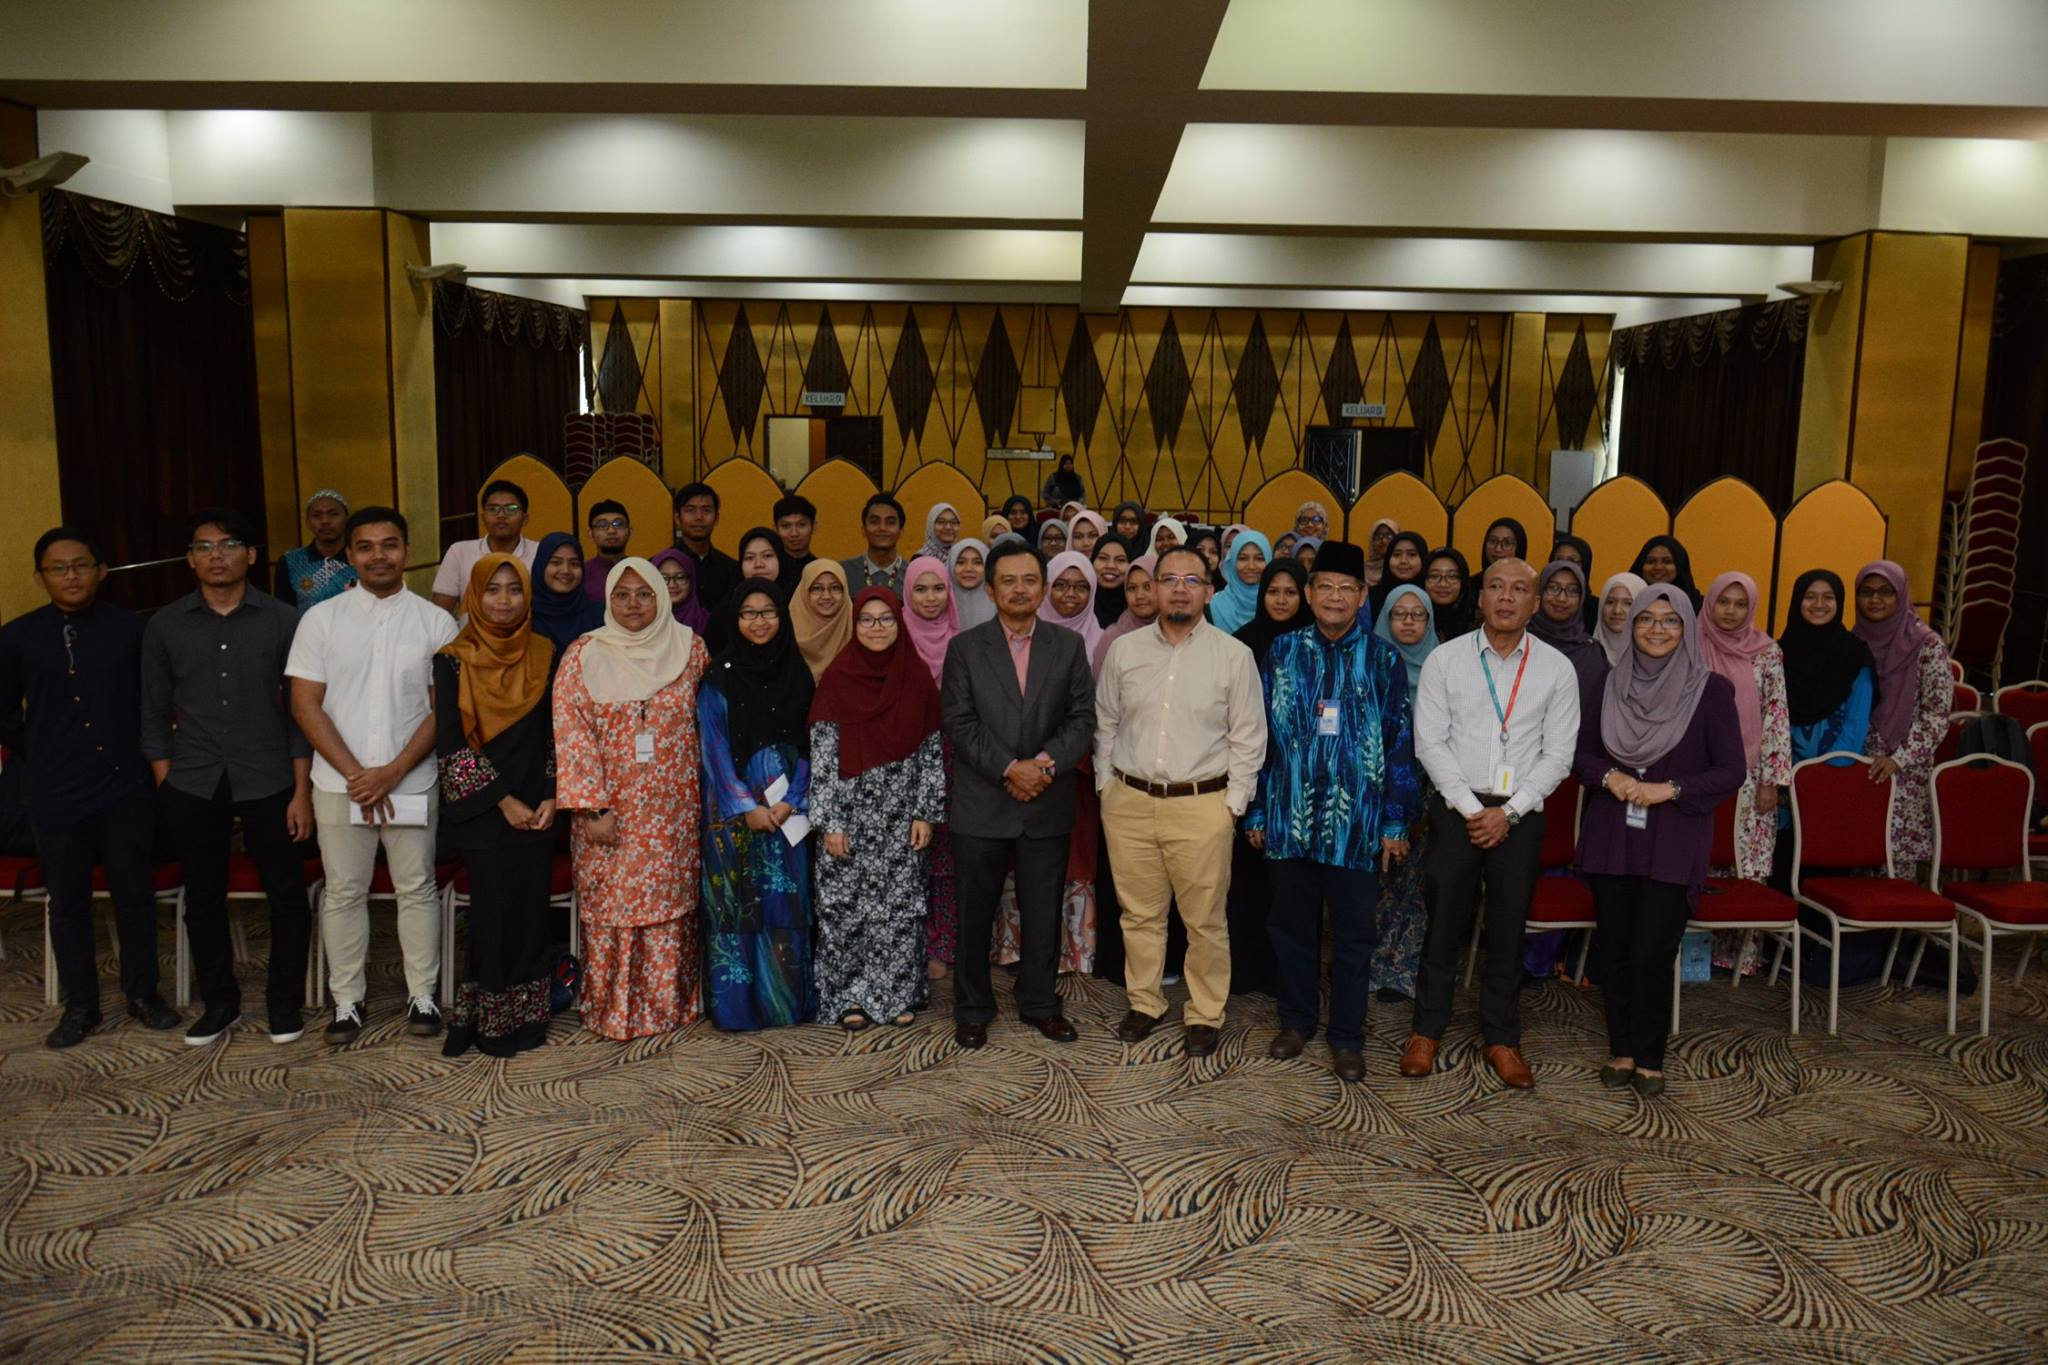 Prudential BSN Takaful Coporate Zakat Giving Ceremony